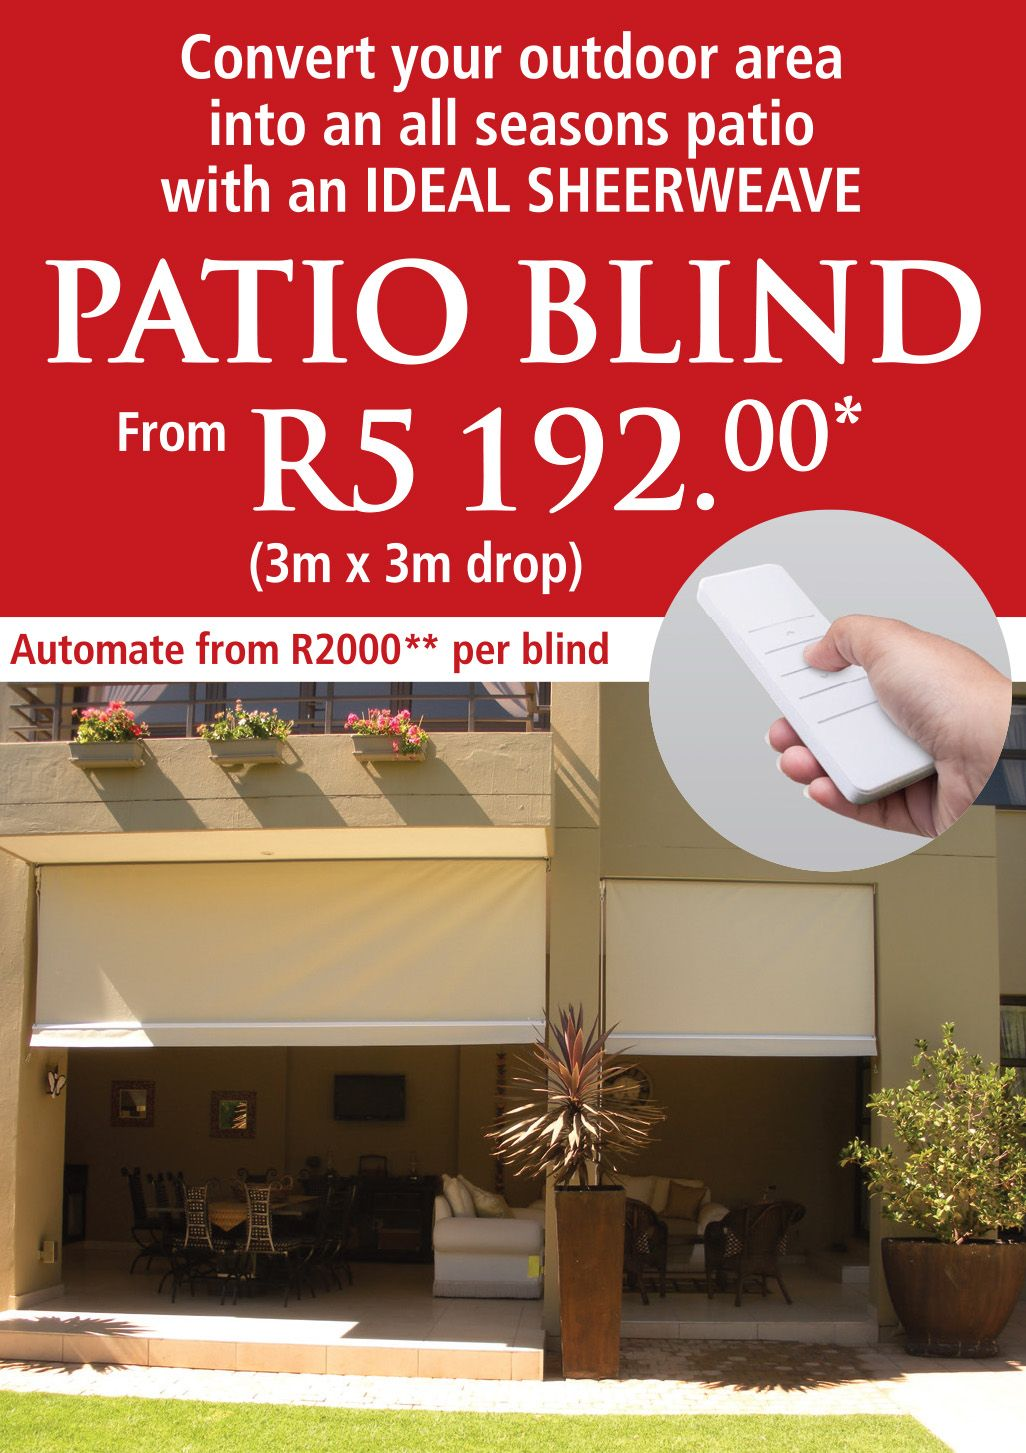 Ideal Patio Blind Promo April2019 Img01